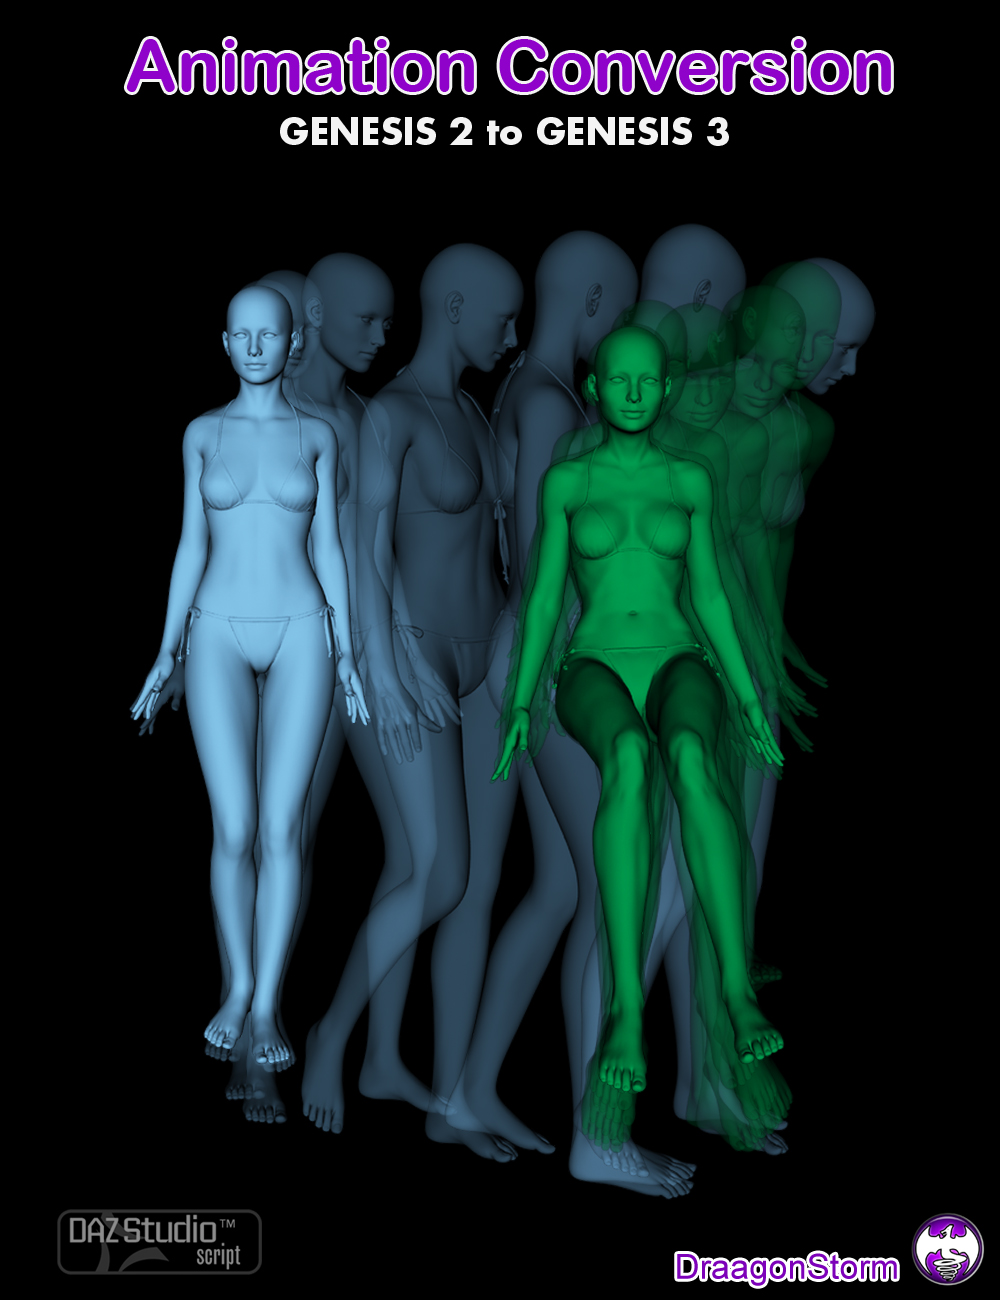 Animation Conversion Genesis 2 to Genesis 3 by: DraagonStorm, 3D Models by Daz 3D